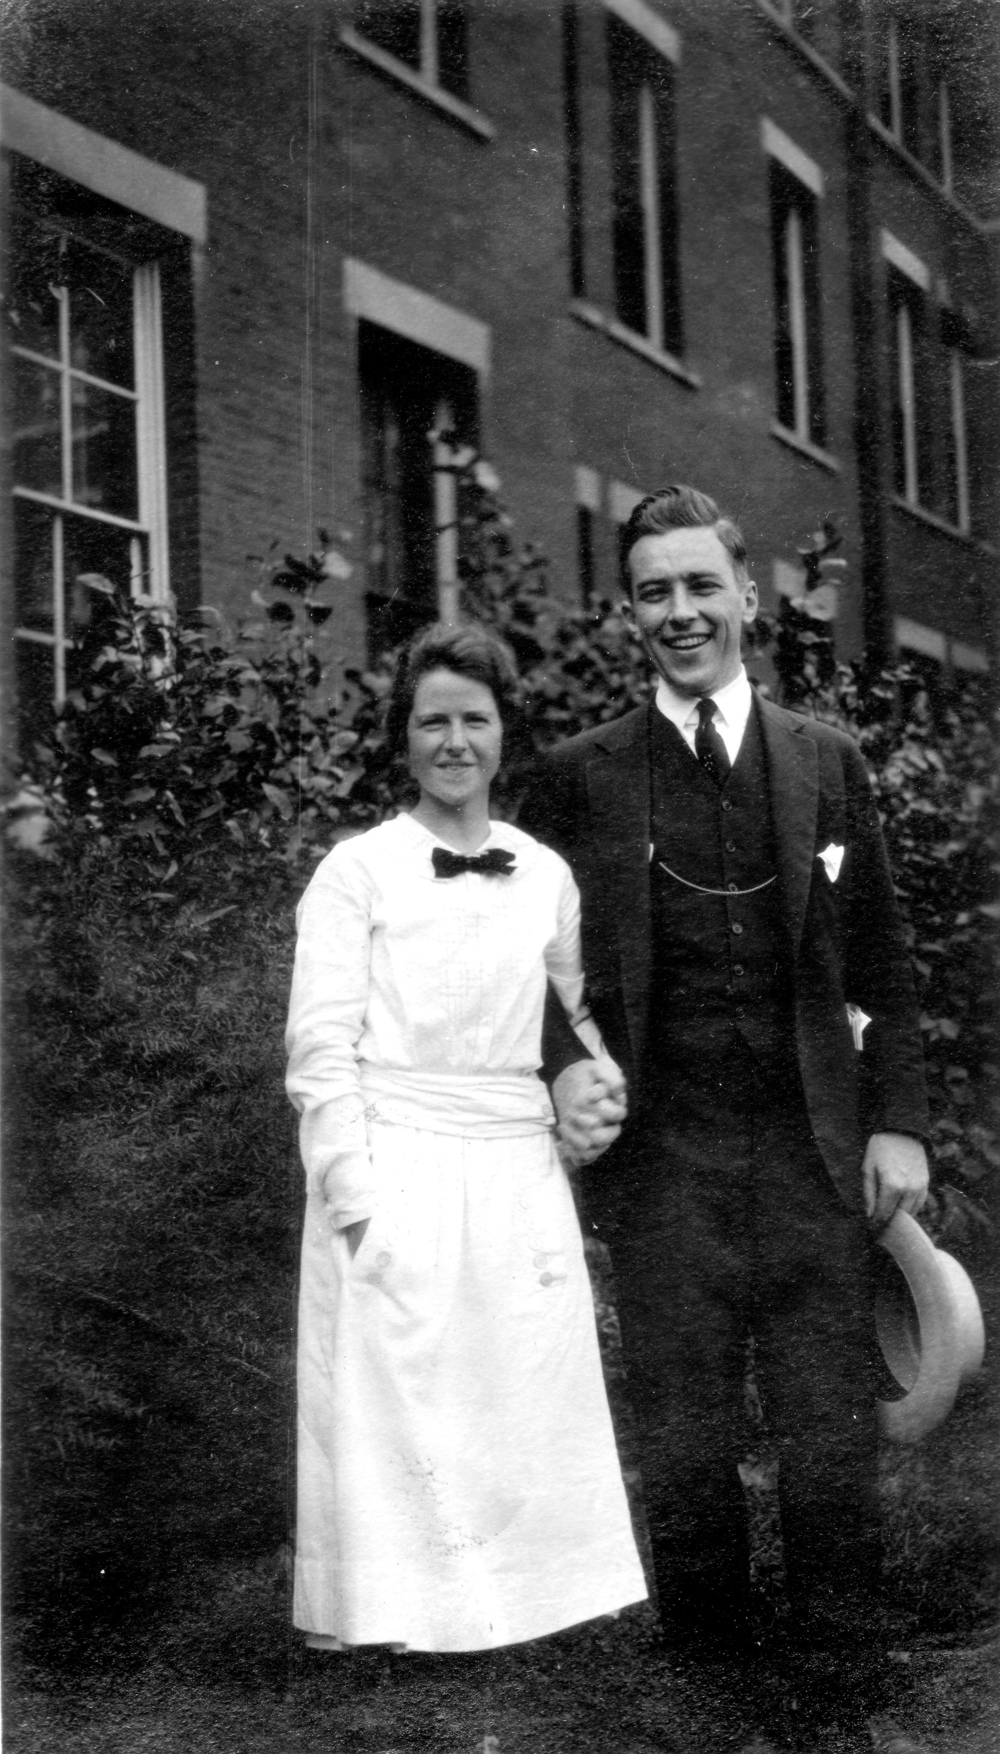 Betty and Paul at the Young Friends General conference, 1922